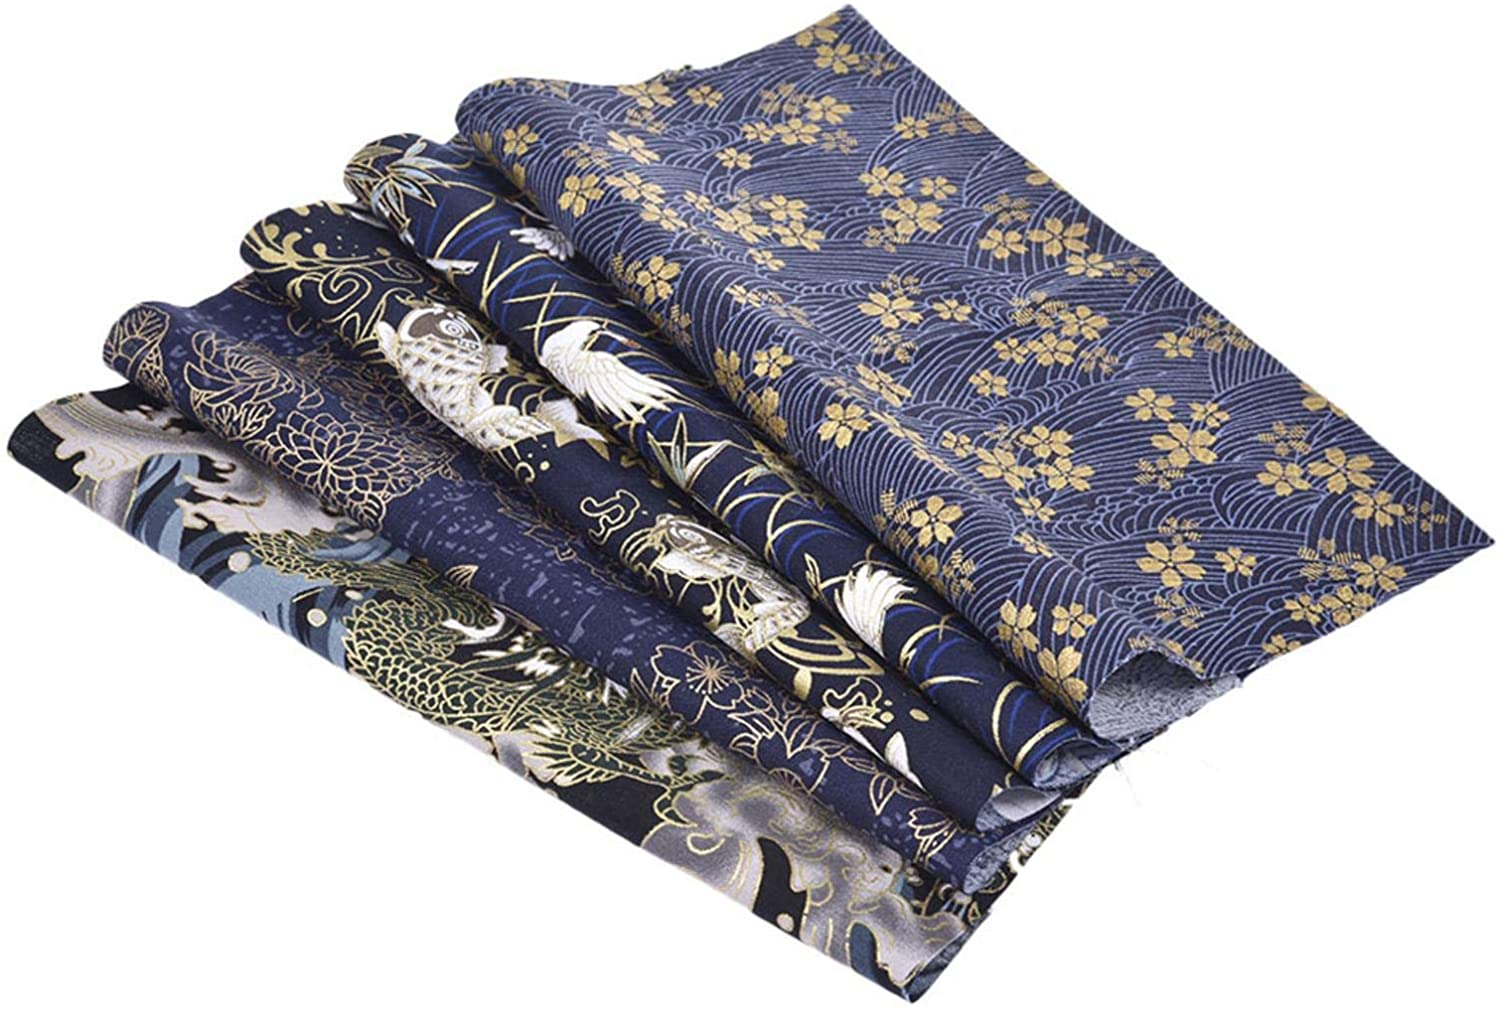 5pcs 50x50cm Japanese Fabric Fat Quarters Bundles, Japanese Cherry Blossom Bronzing Floral Fabric, 100 Cotton Material for Sewing, Quilting, Patchwork, Craft